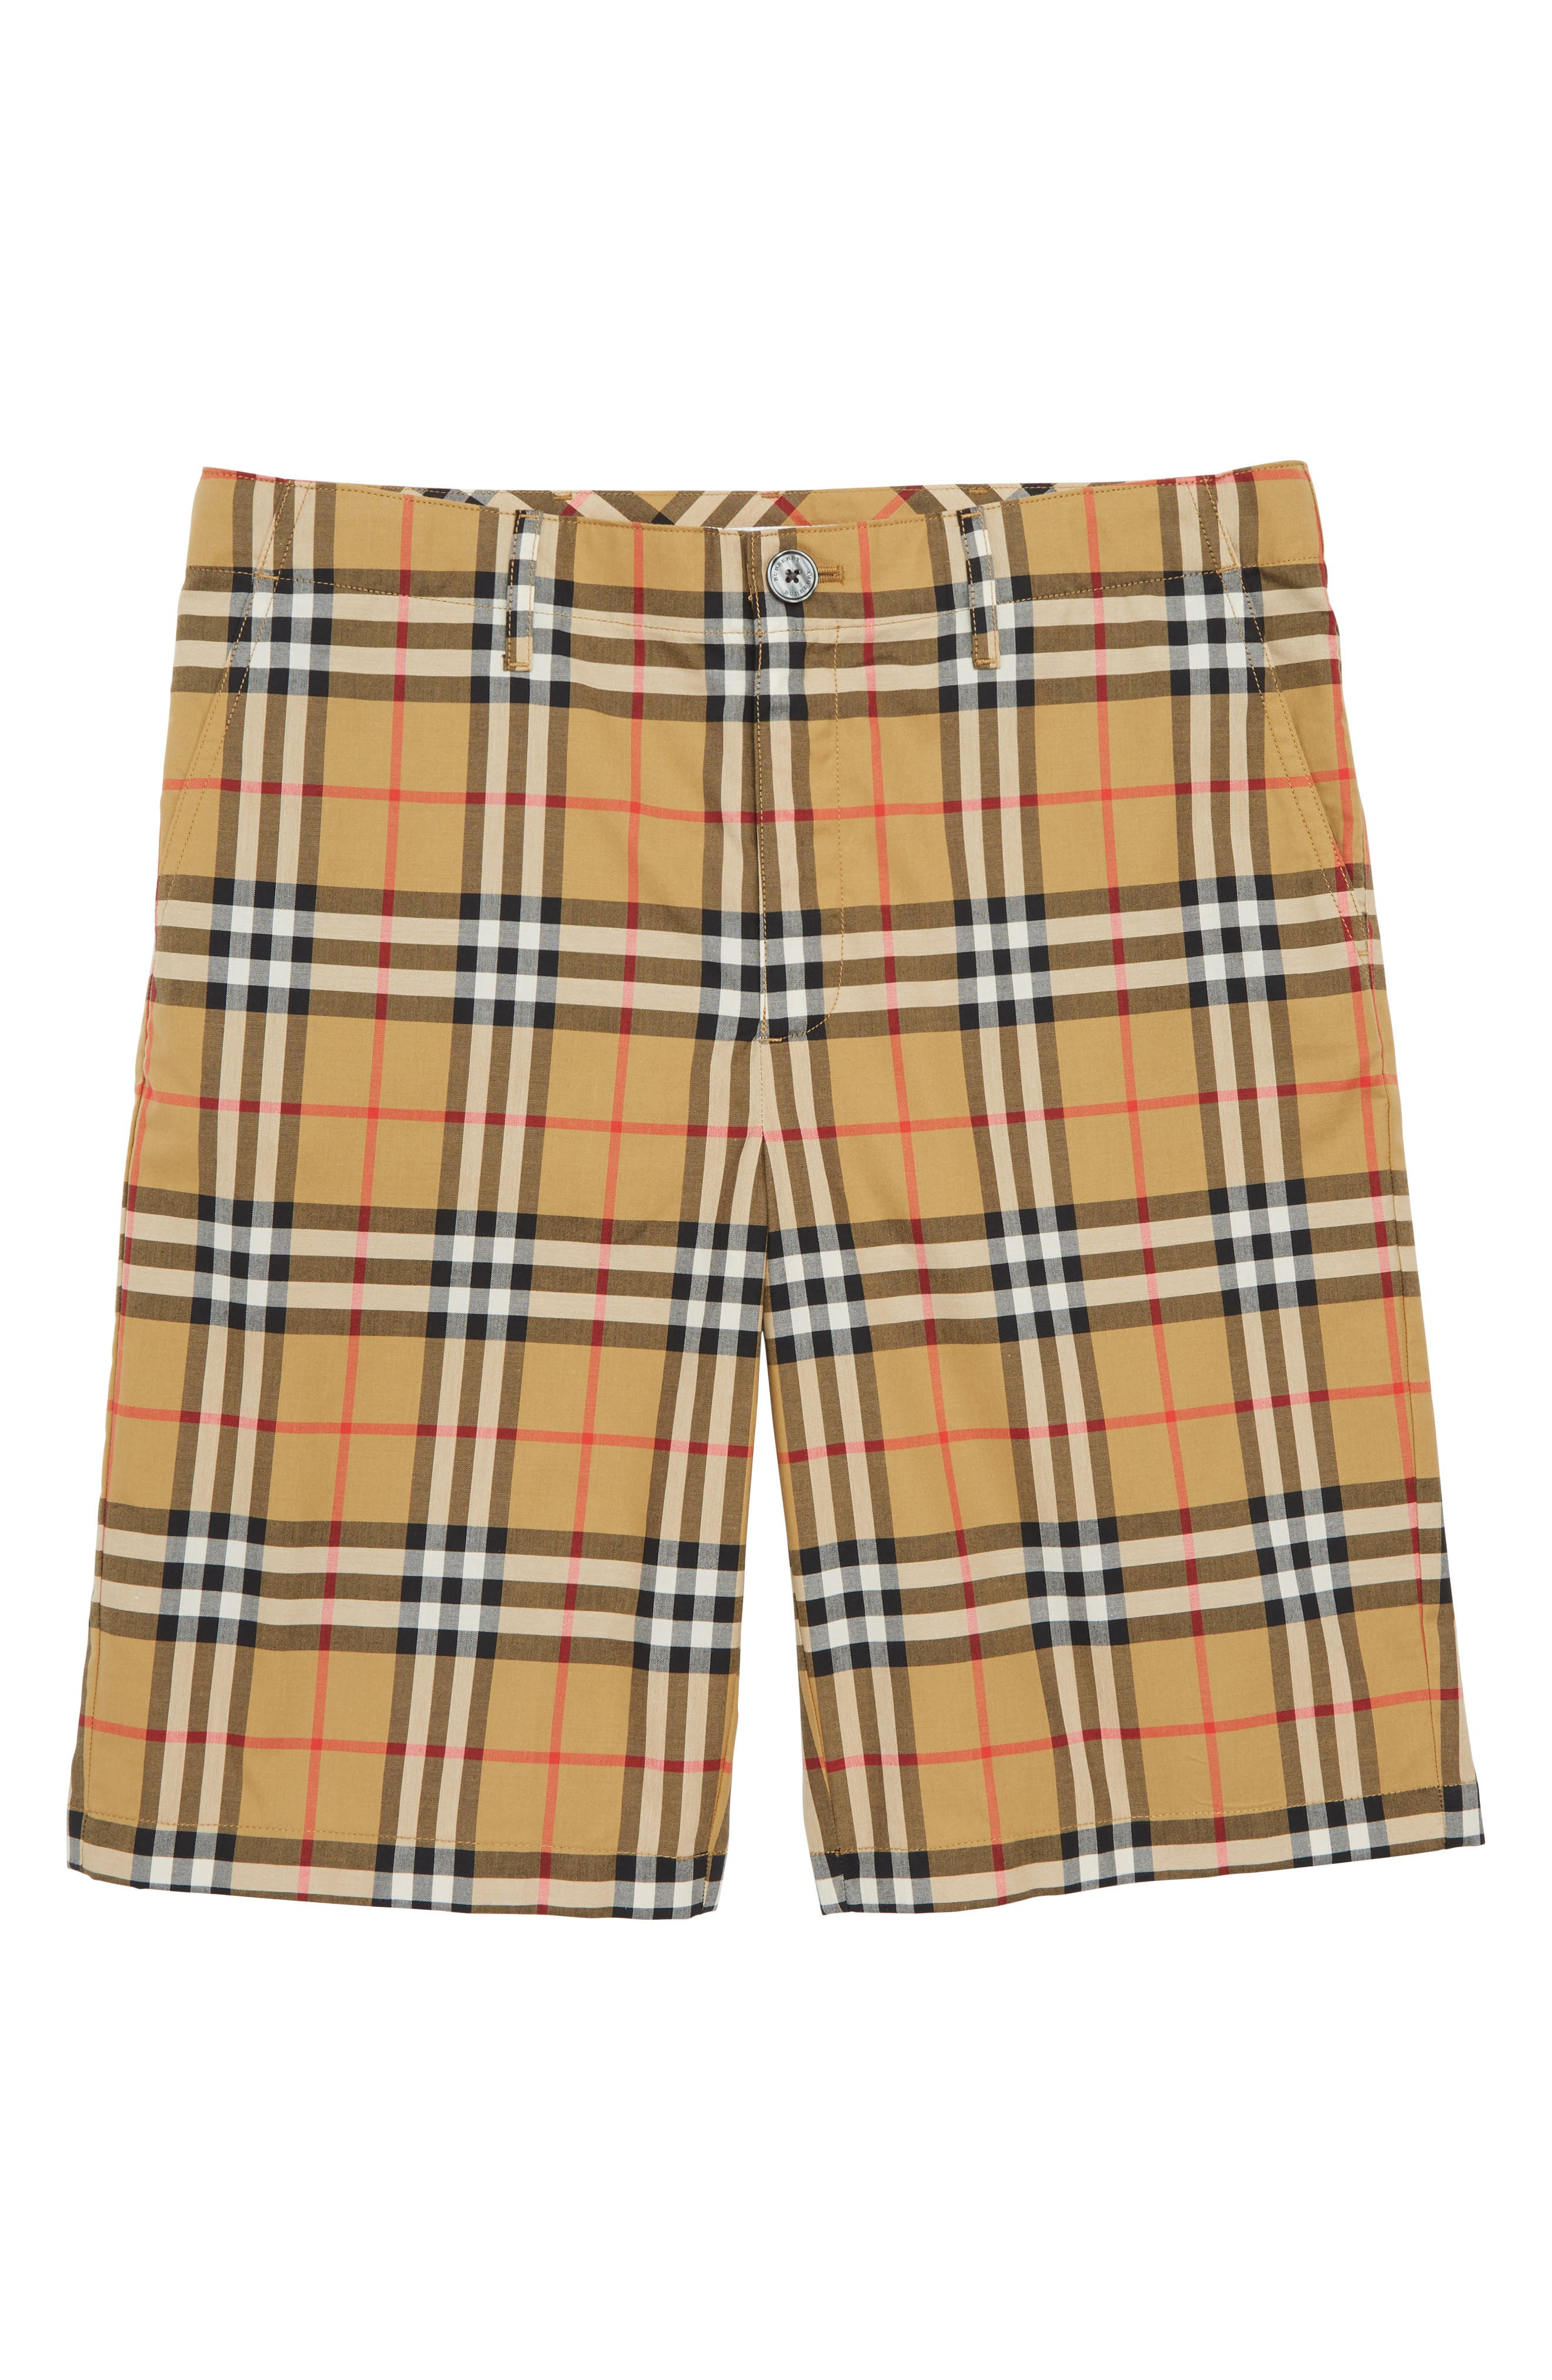 BURBERRY, Tristen Check Shorts, Main thumbnail 1, color, 251